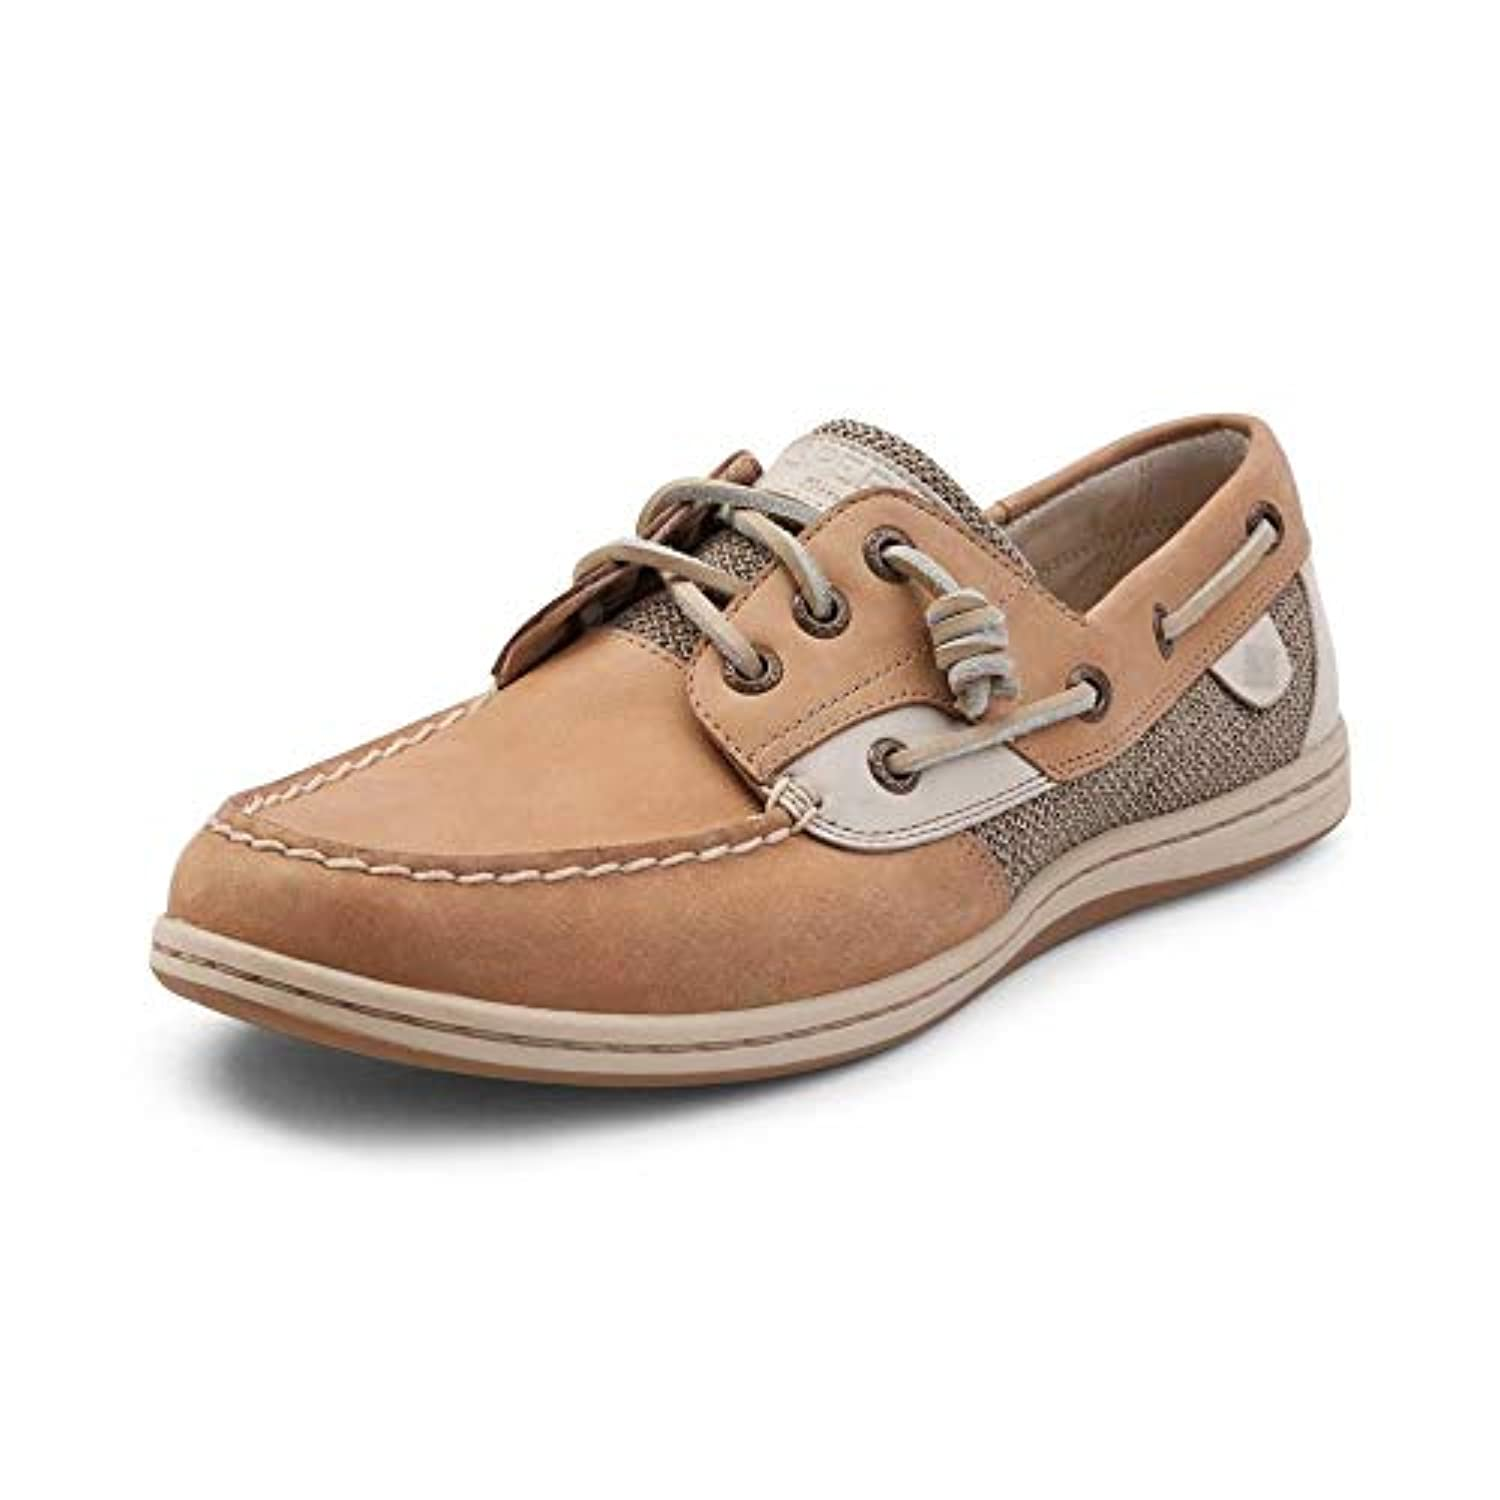 (スペリートップサイダー) SPERRY TOPSIDER 靴?シューズ レディースサンダル Womens Sperry Top-Sider Songfish Boat Shoe Linen/Oat Linen/Oat...